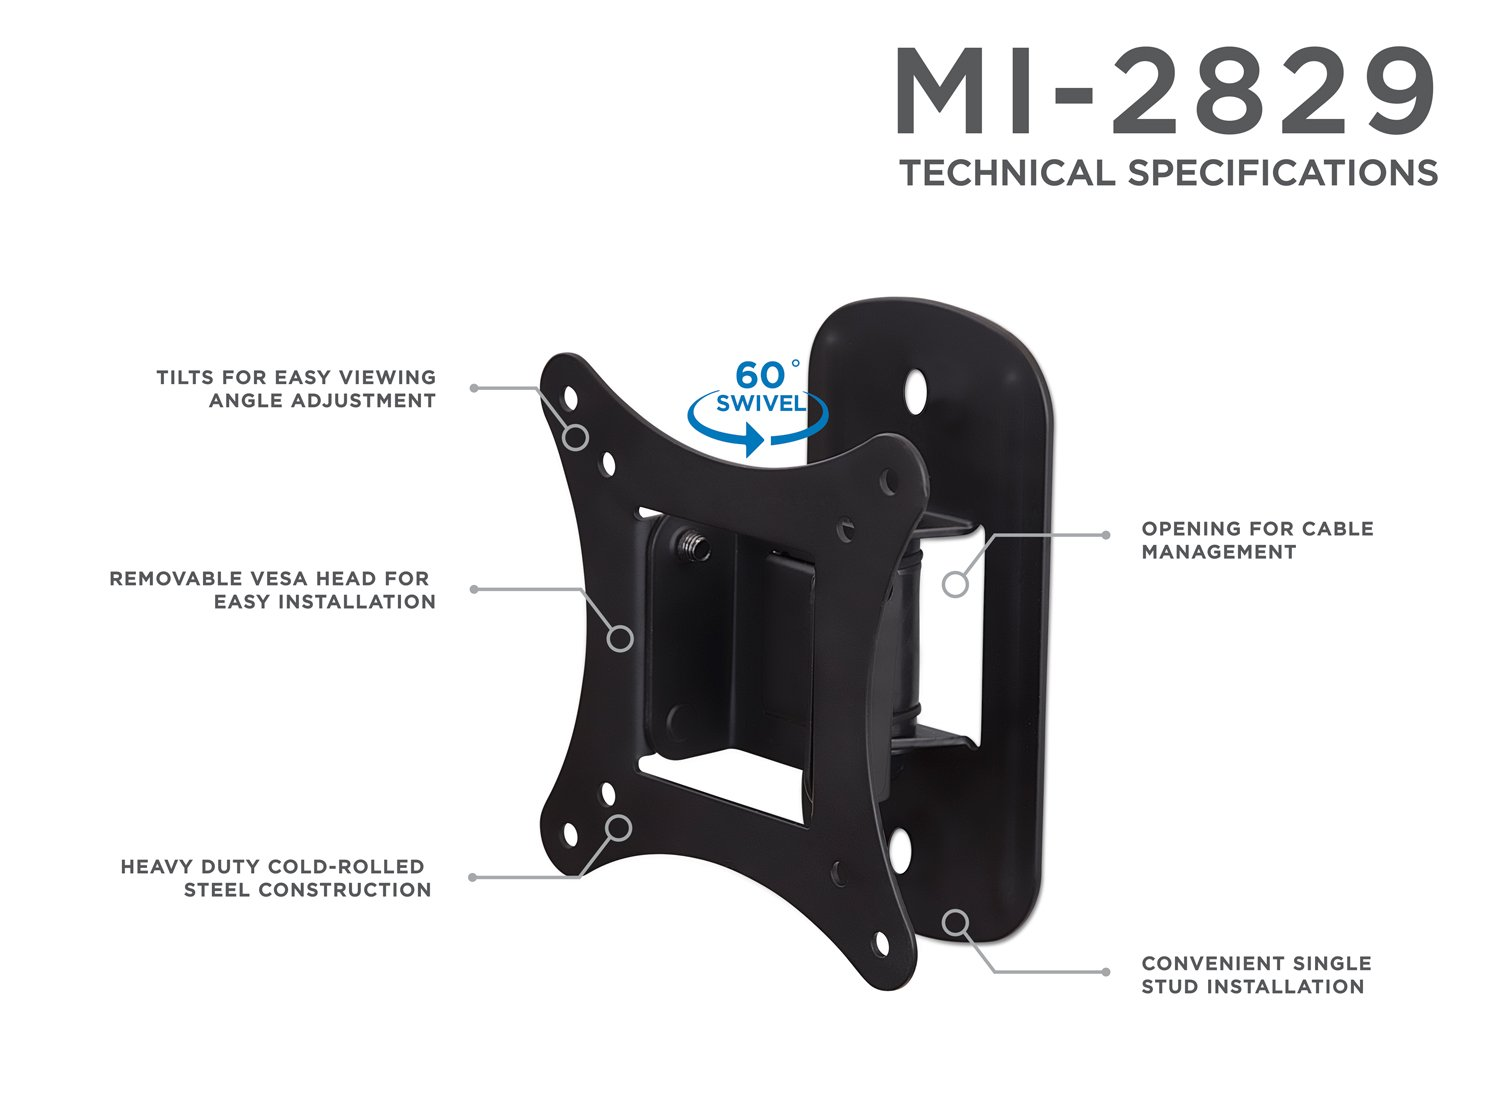 Buy Mount-It MI-2829 TV Mount For Flat Screens Tilting TV Wall Mount  Bracket Fits up to 25 Inch LCD LED TVs and Computer Monitors VESA 75 and  100 Compatible ...